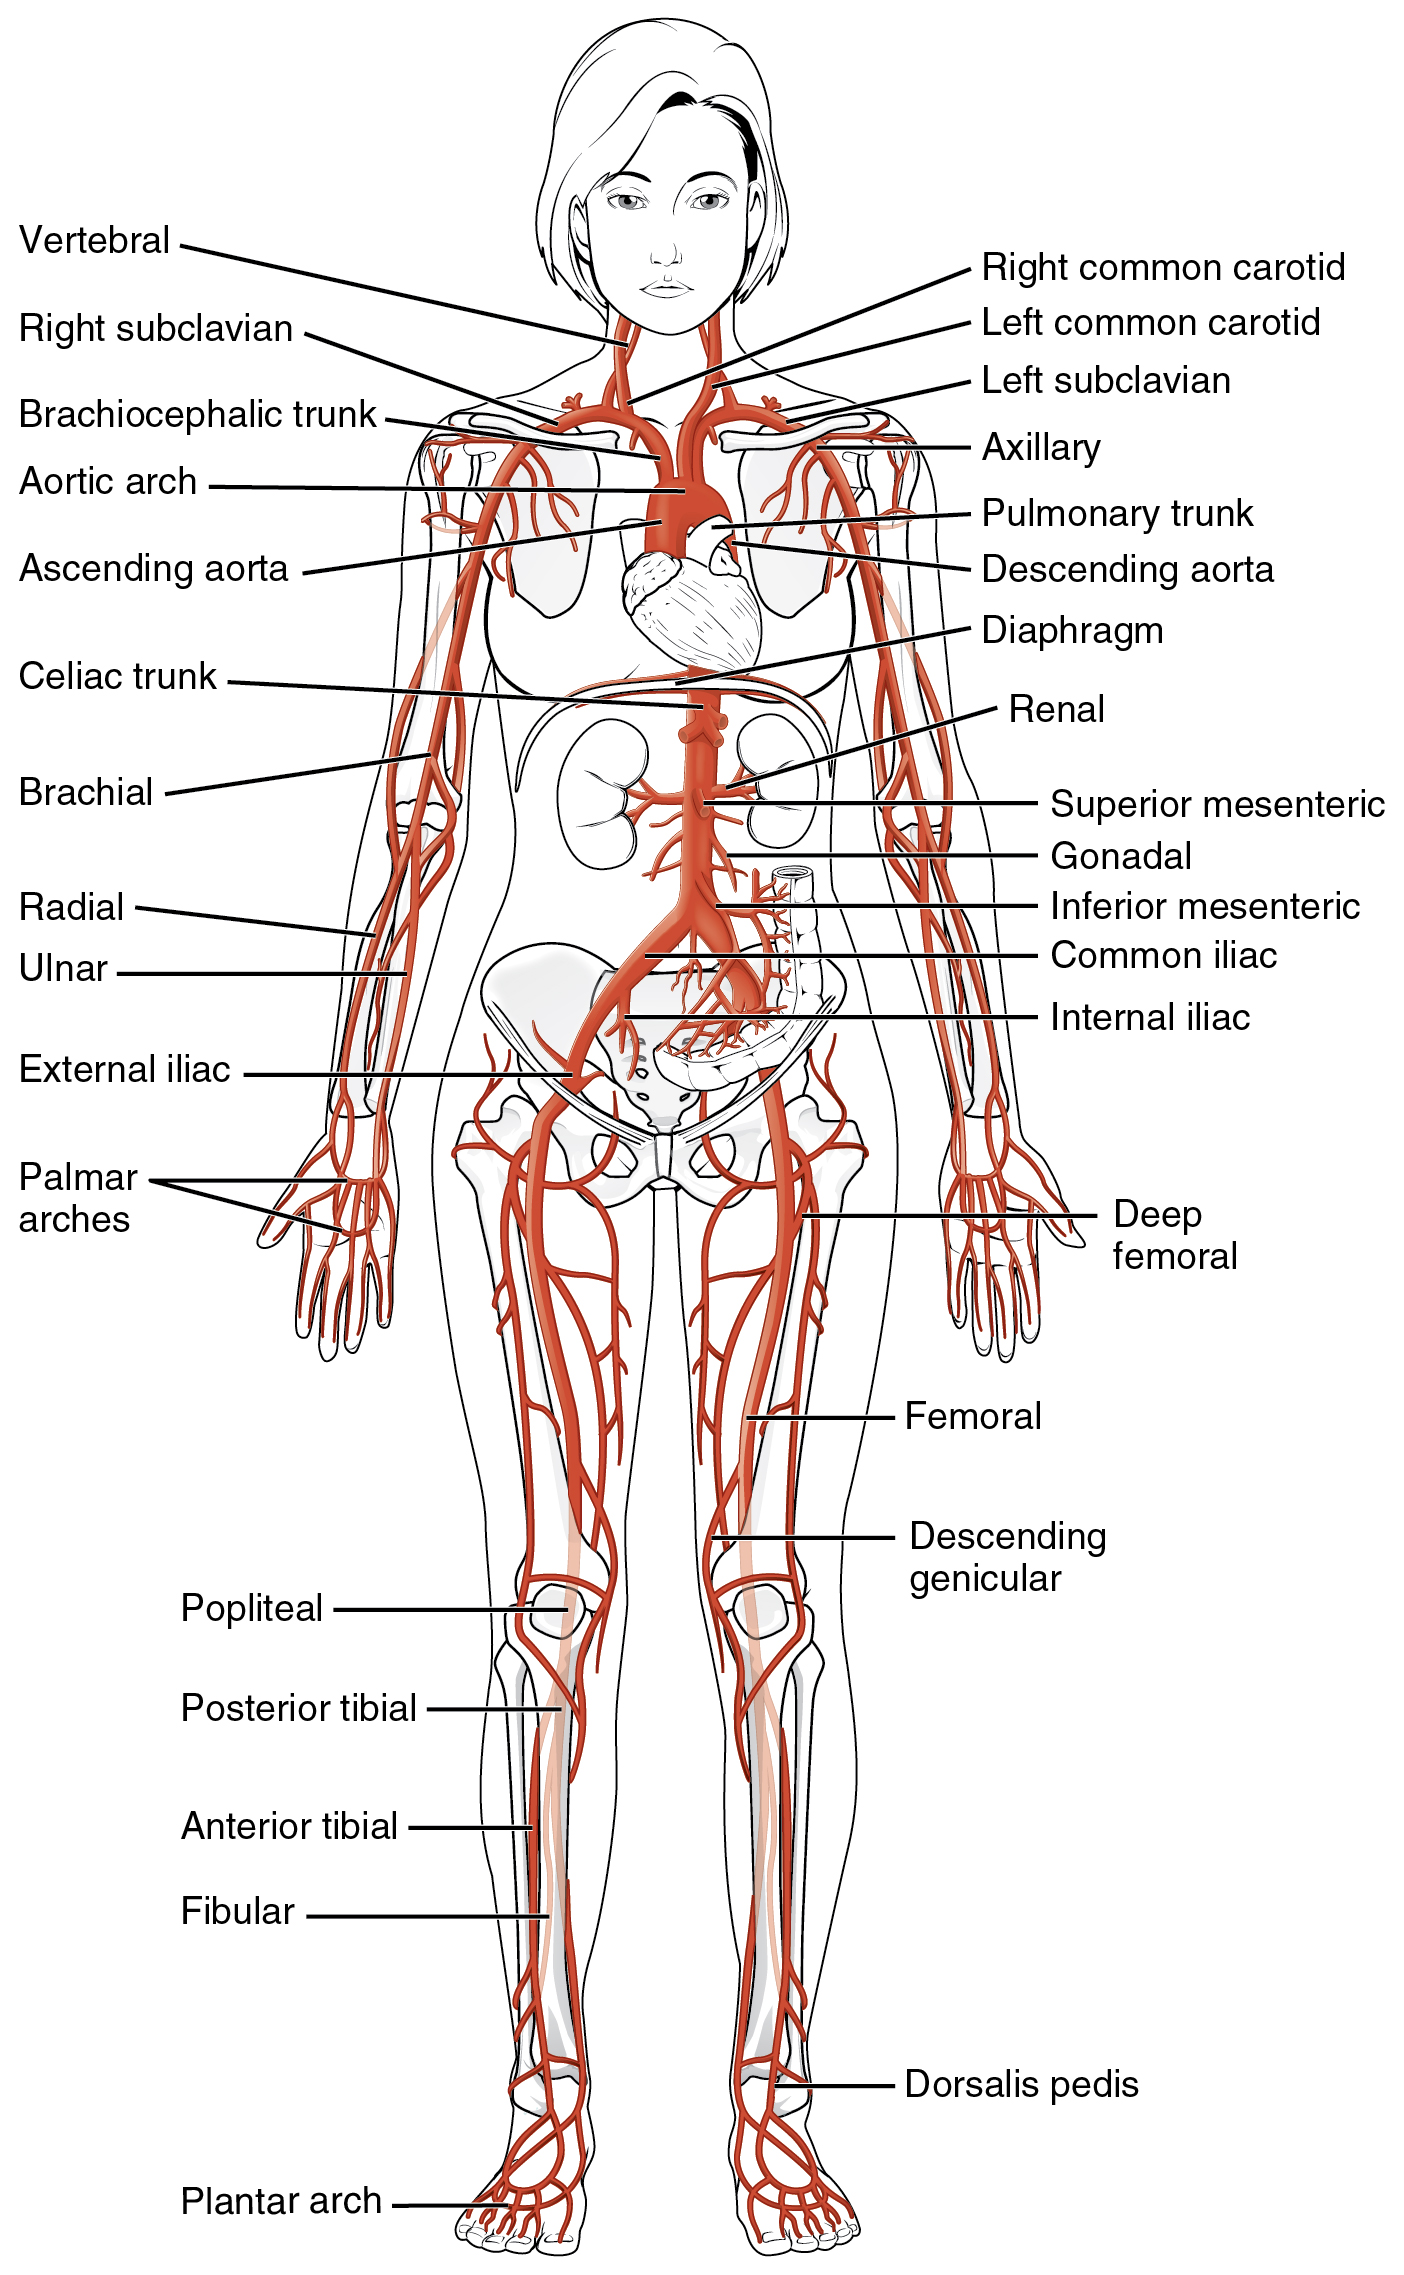 Diagrams Of Blood Flow Capillaries, Diagrams, Free Engine ...